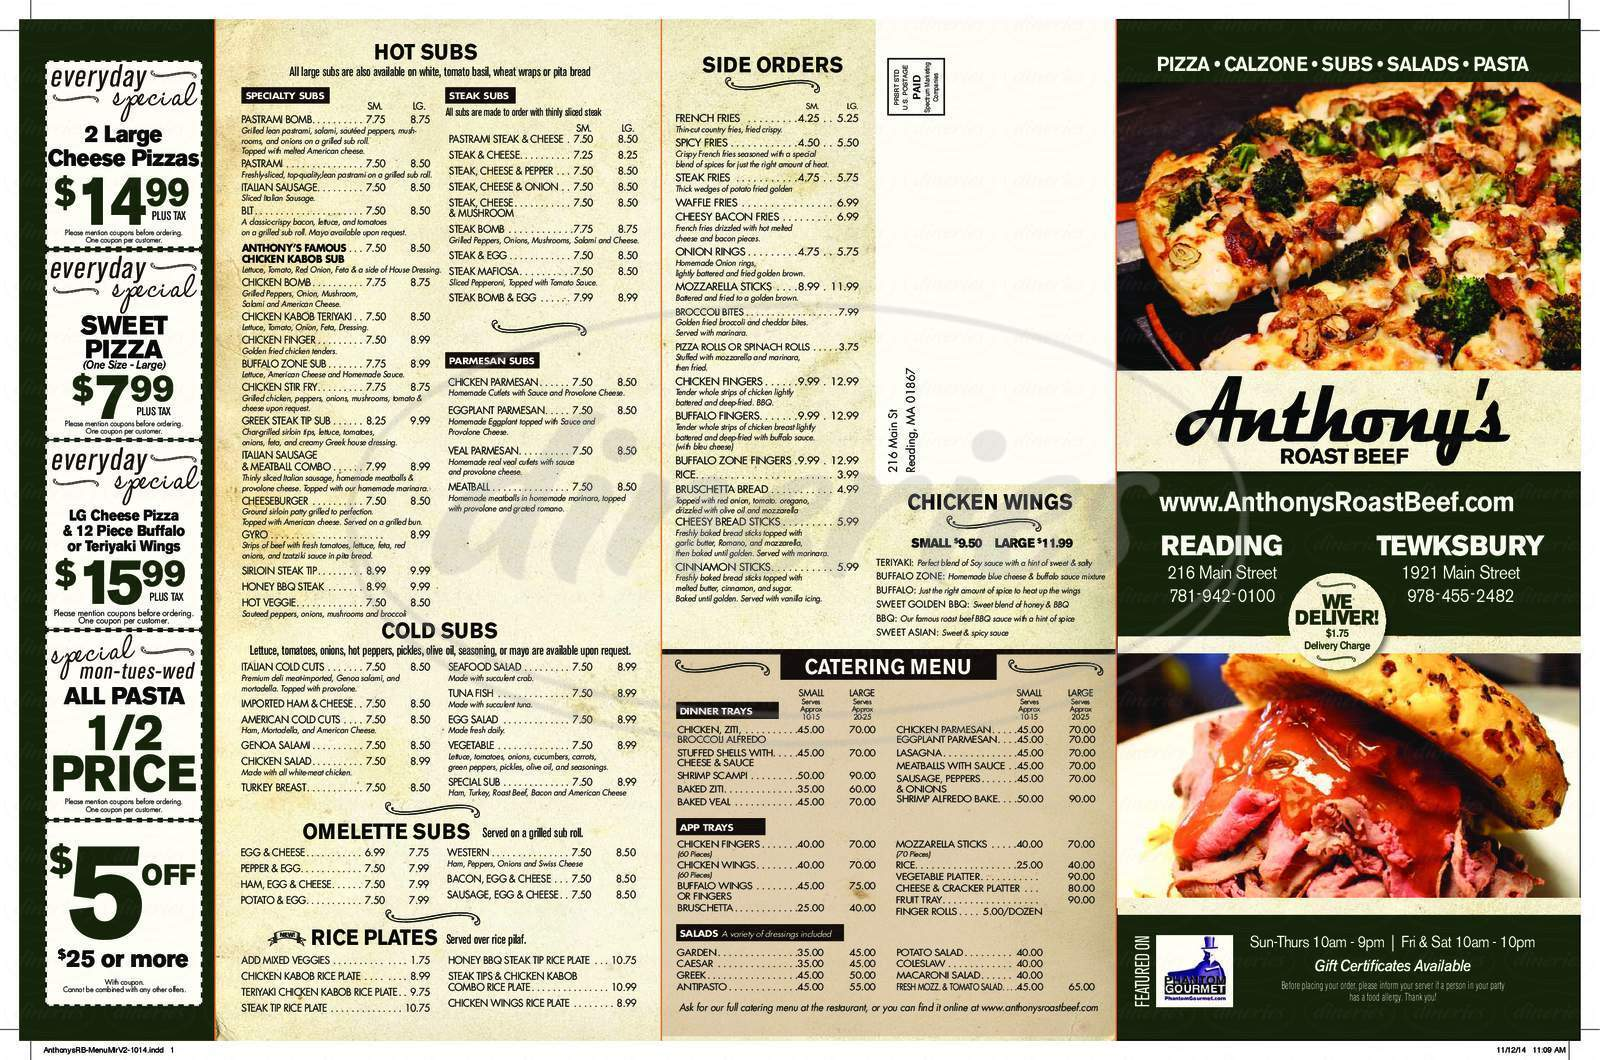 menu for Anthony's Roast Beef & Pizza